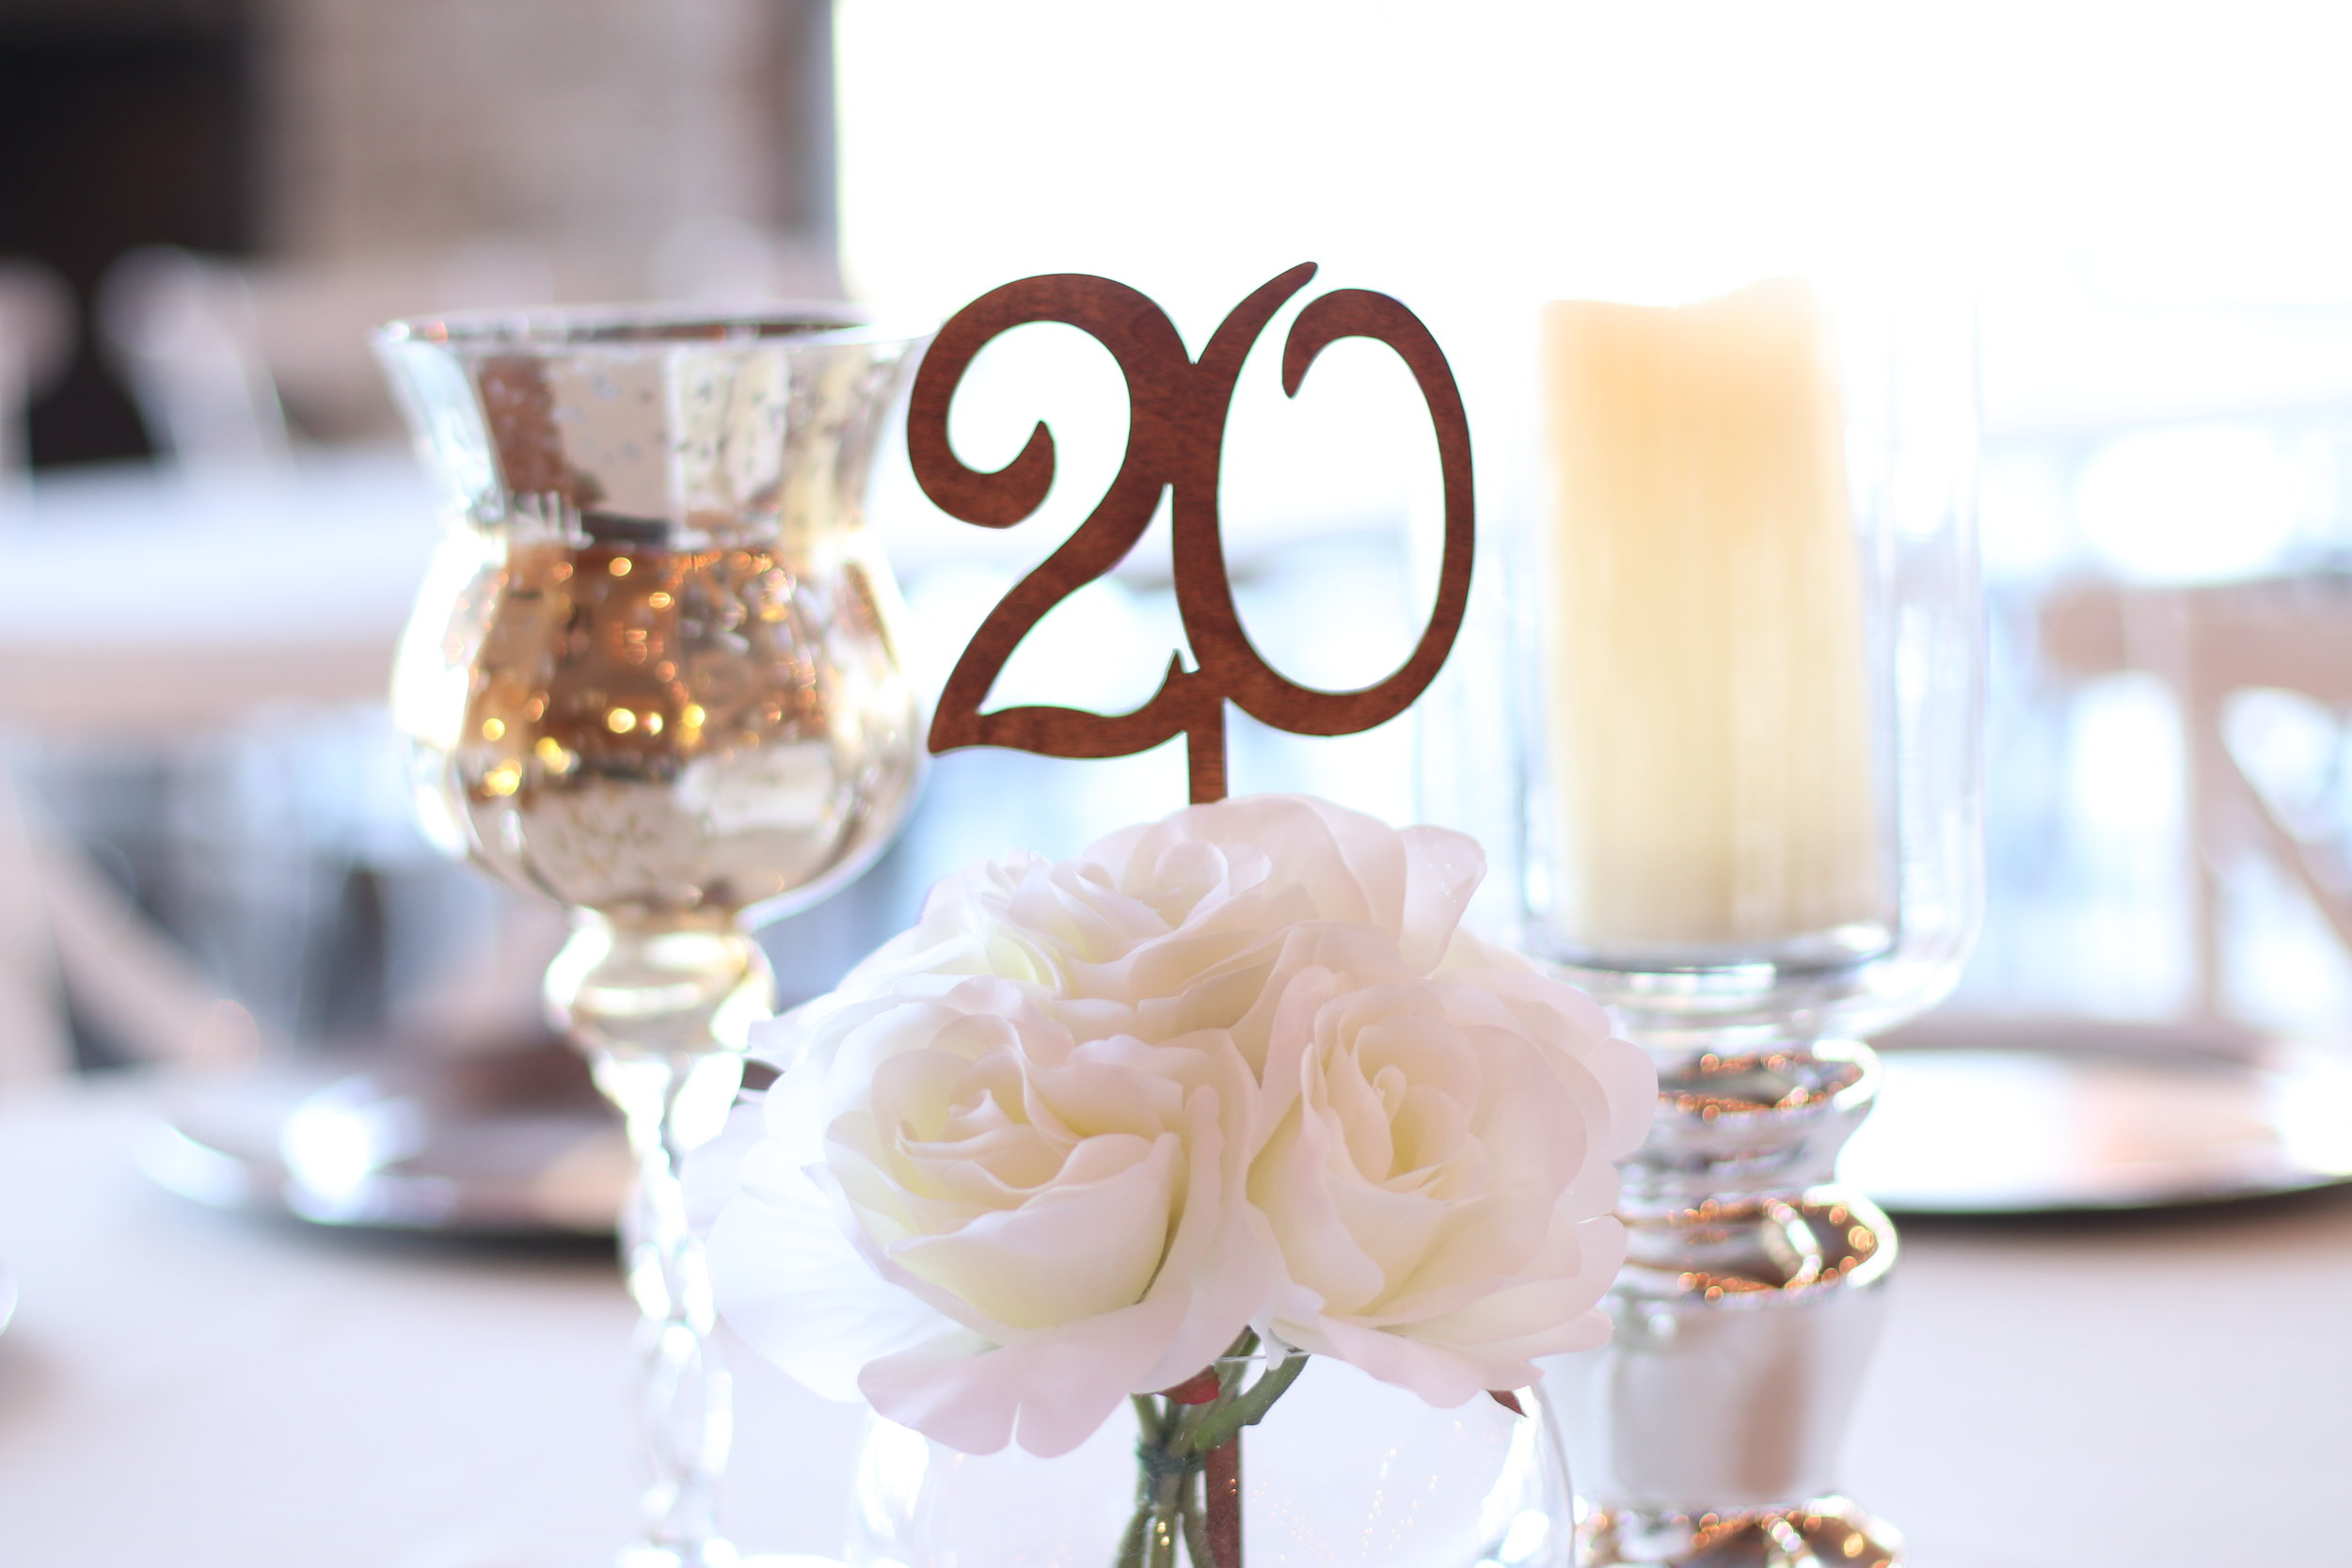 Td 40 20 Wooden Stick Table Numbers Haue Valley St Louis